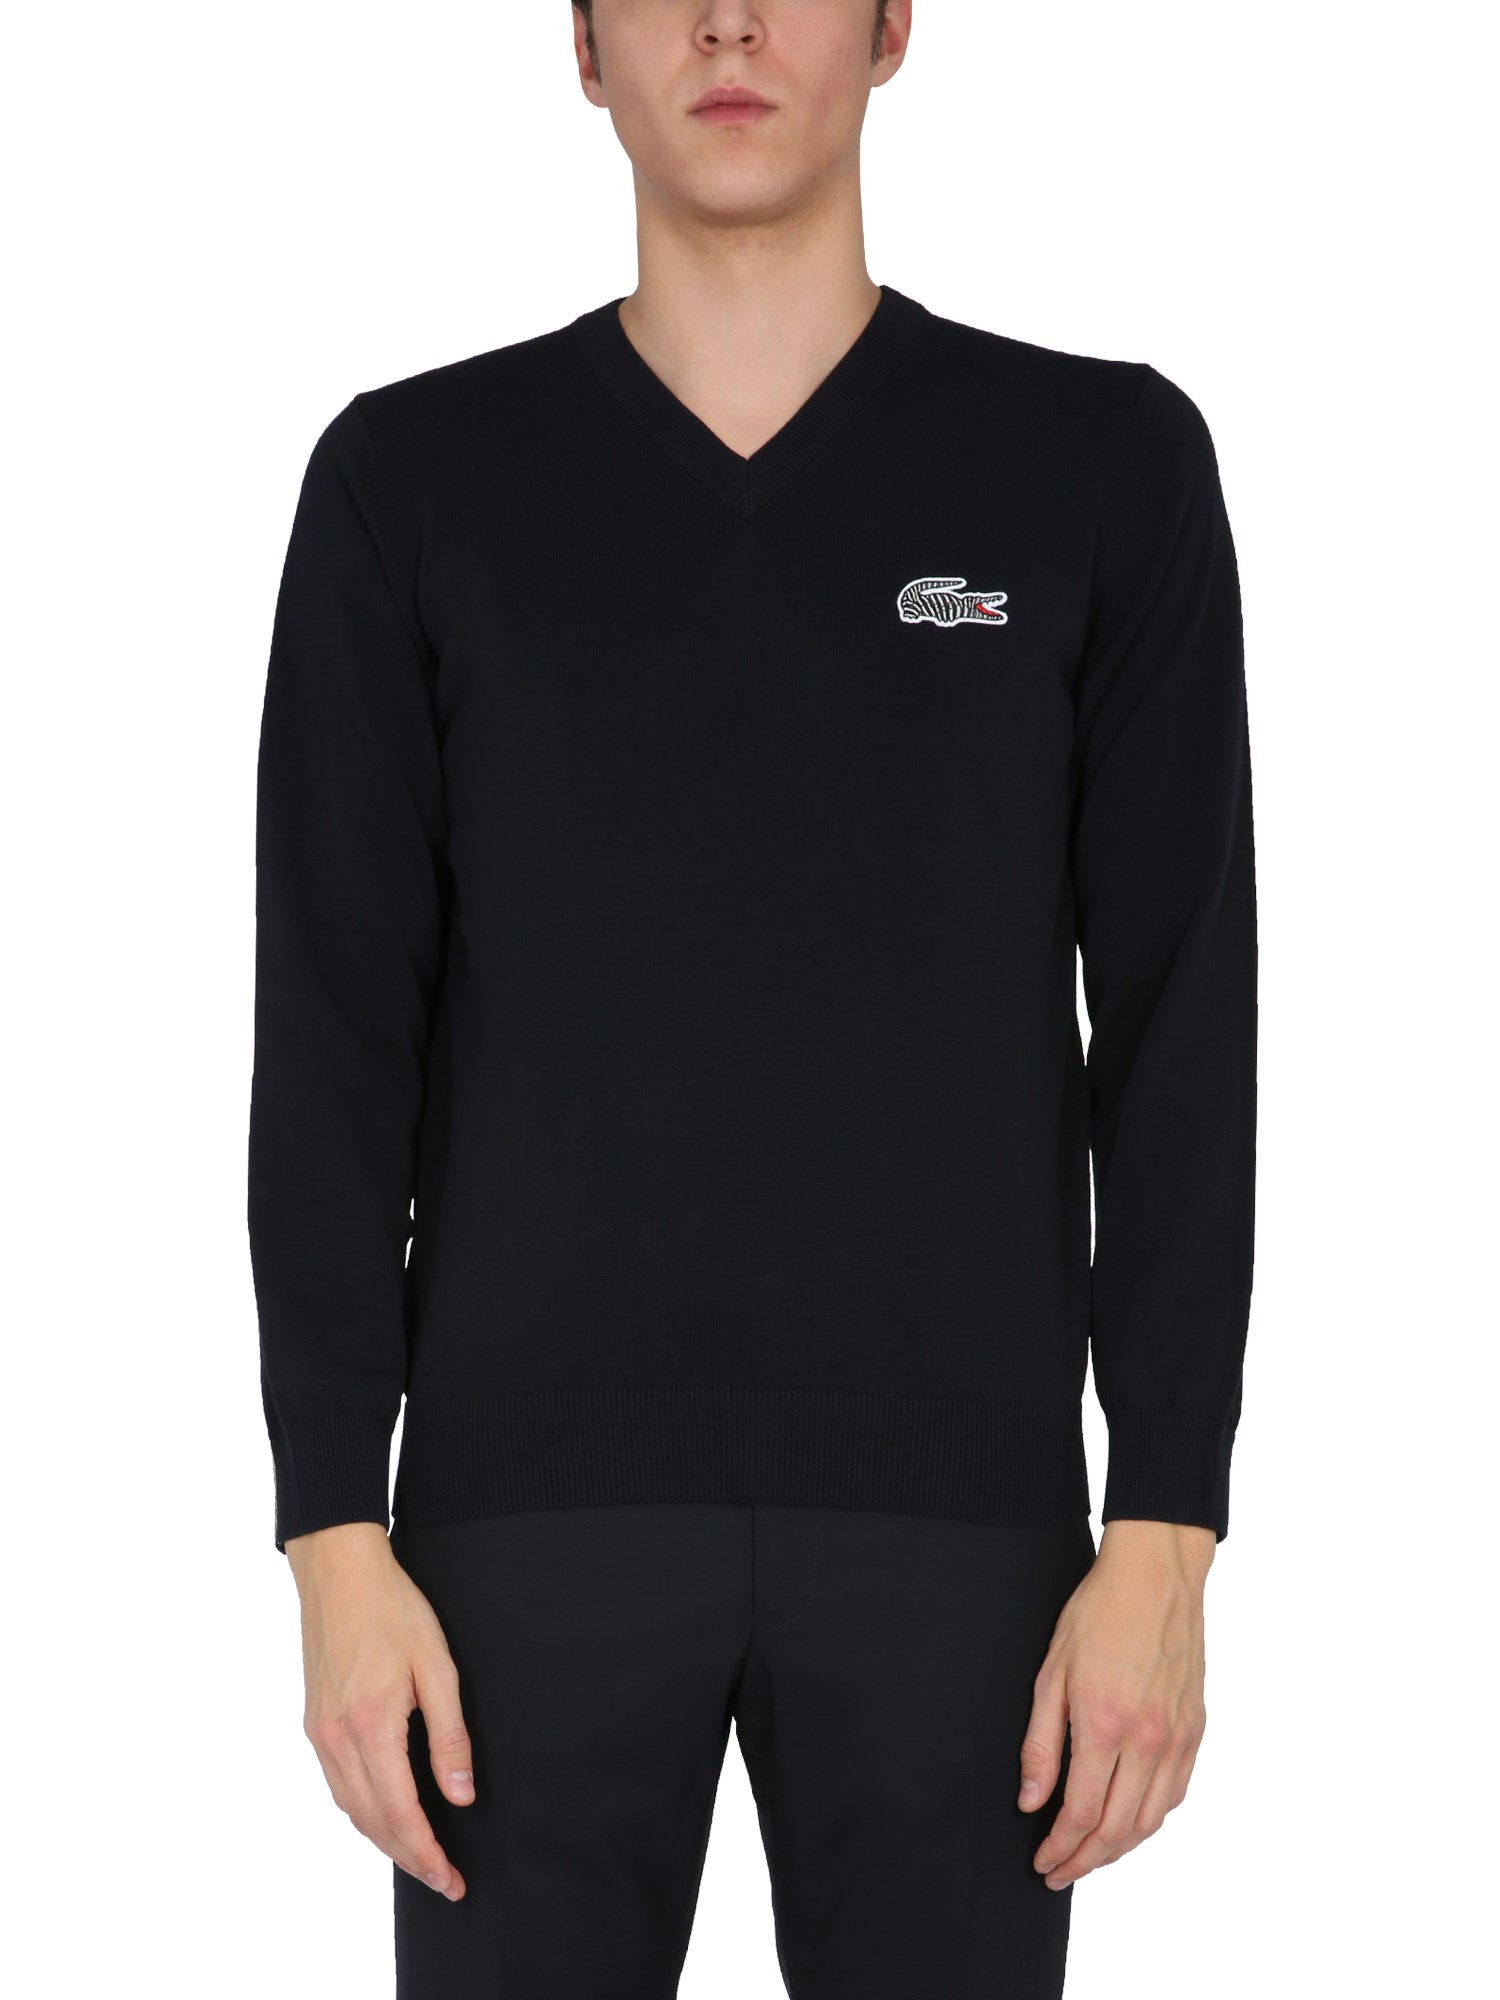 Lacoste X National Geographic V-NECK SWEATER